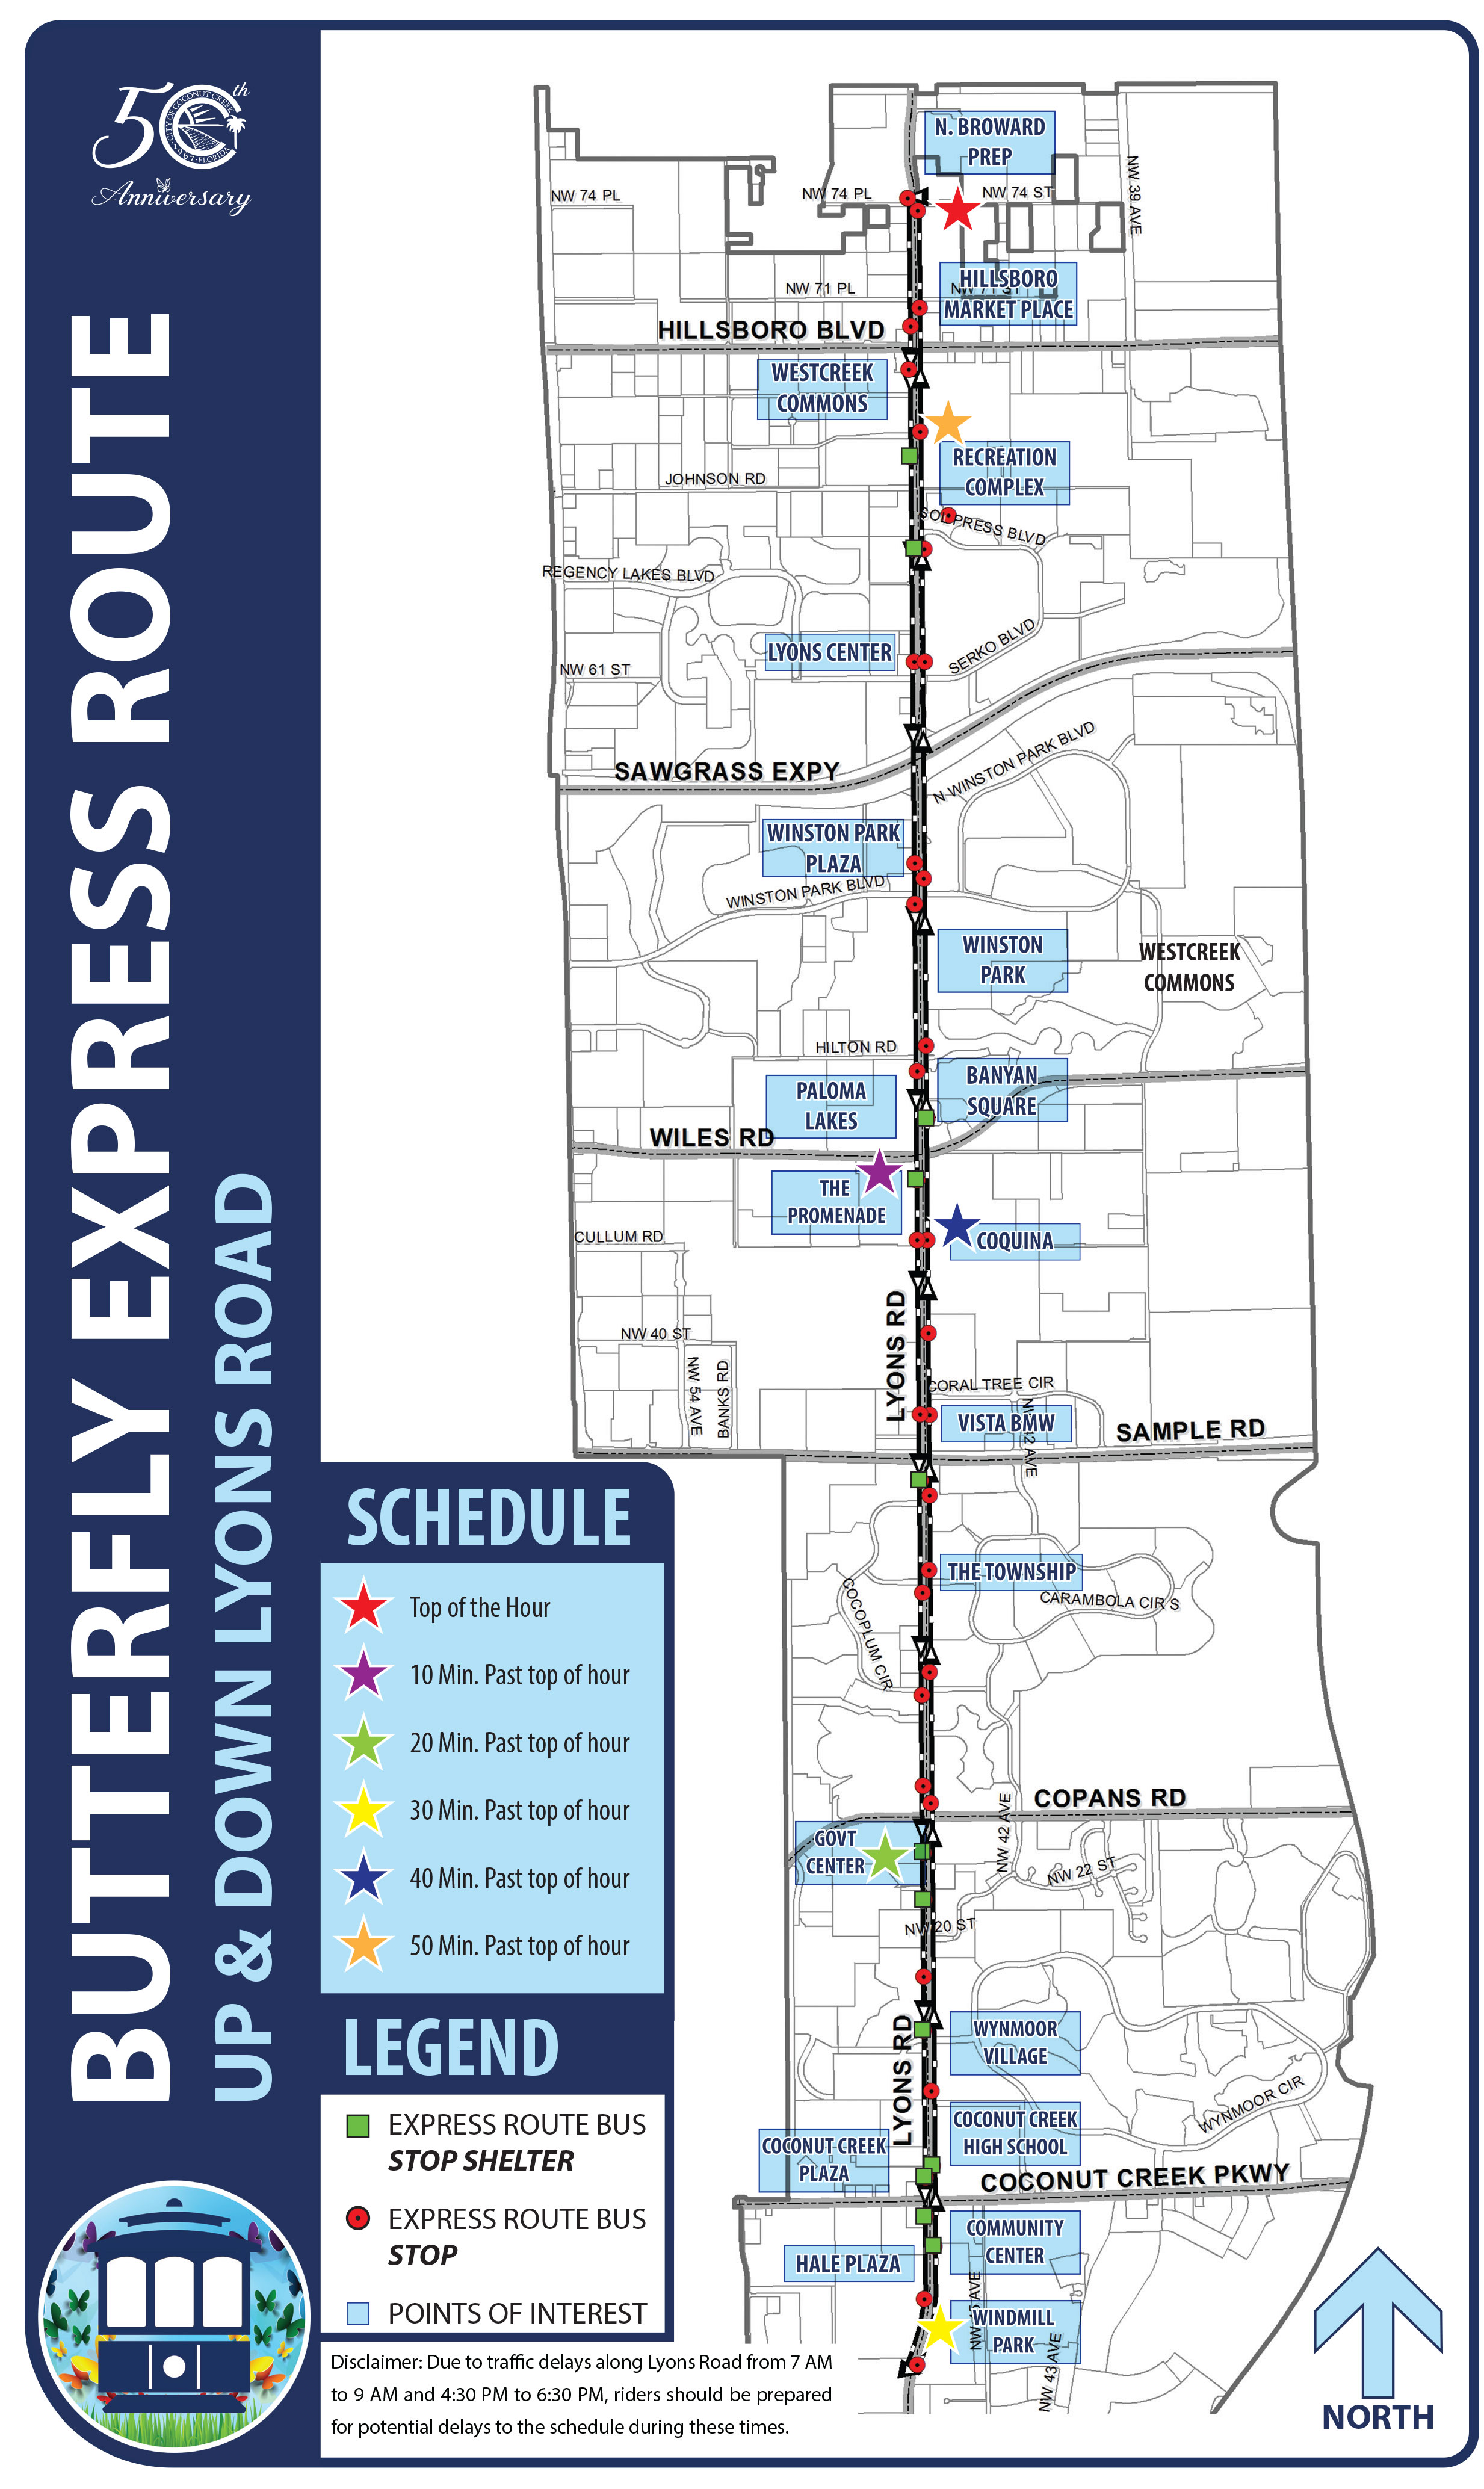 Coconut Creek Butterfly Express Route